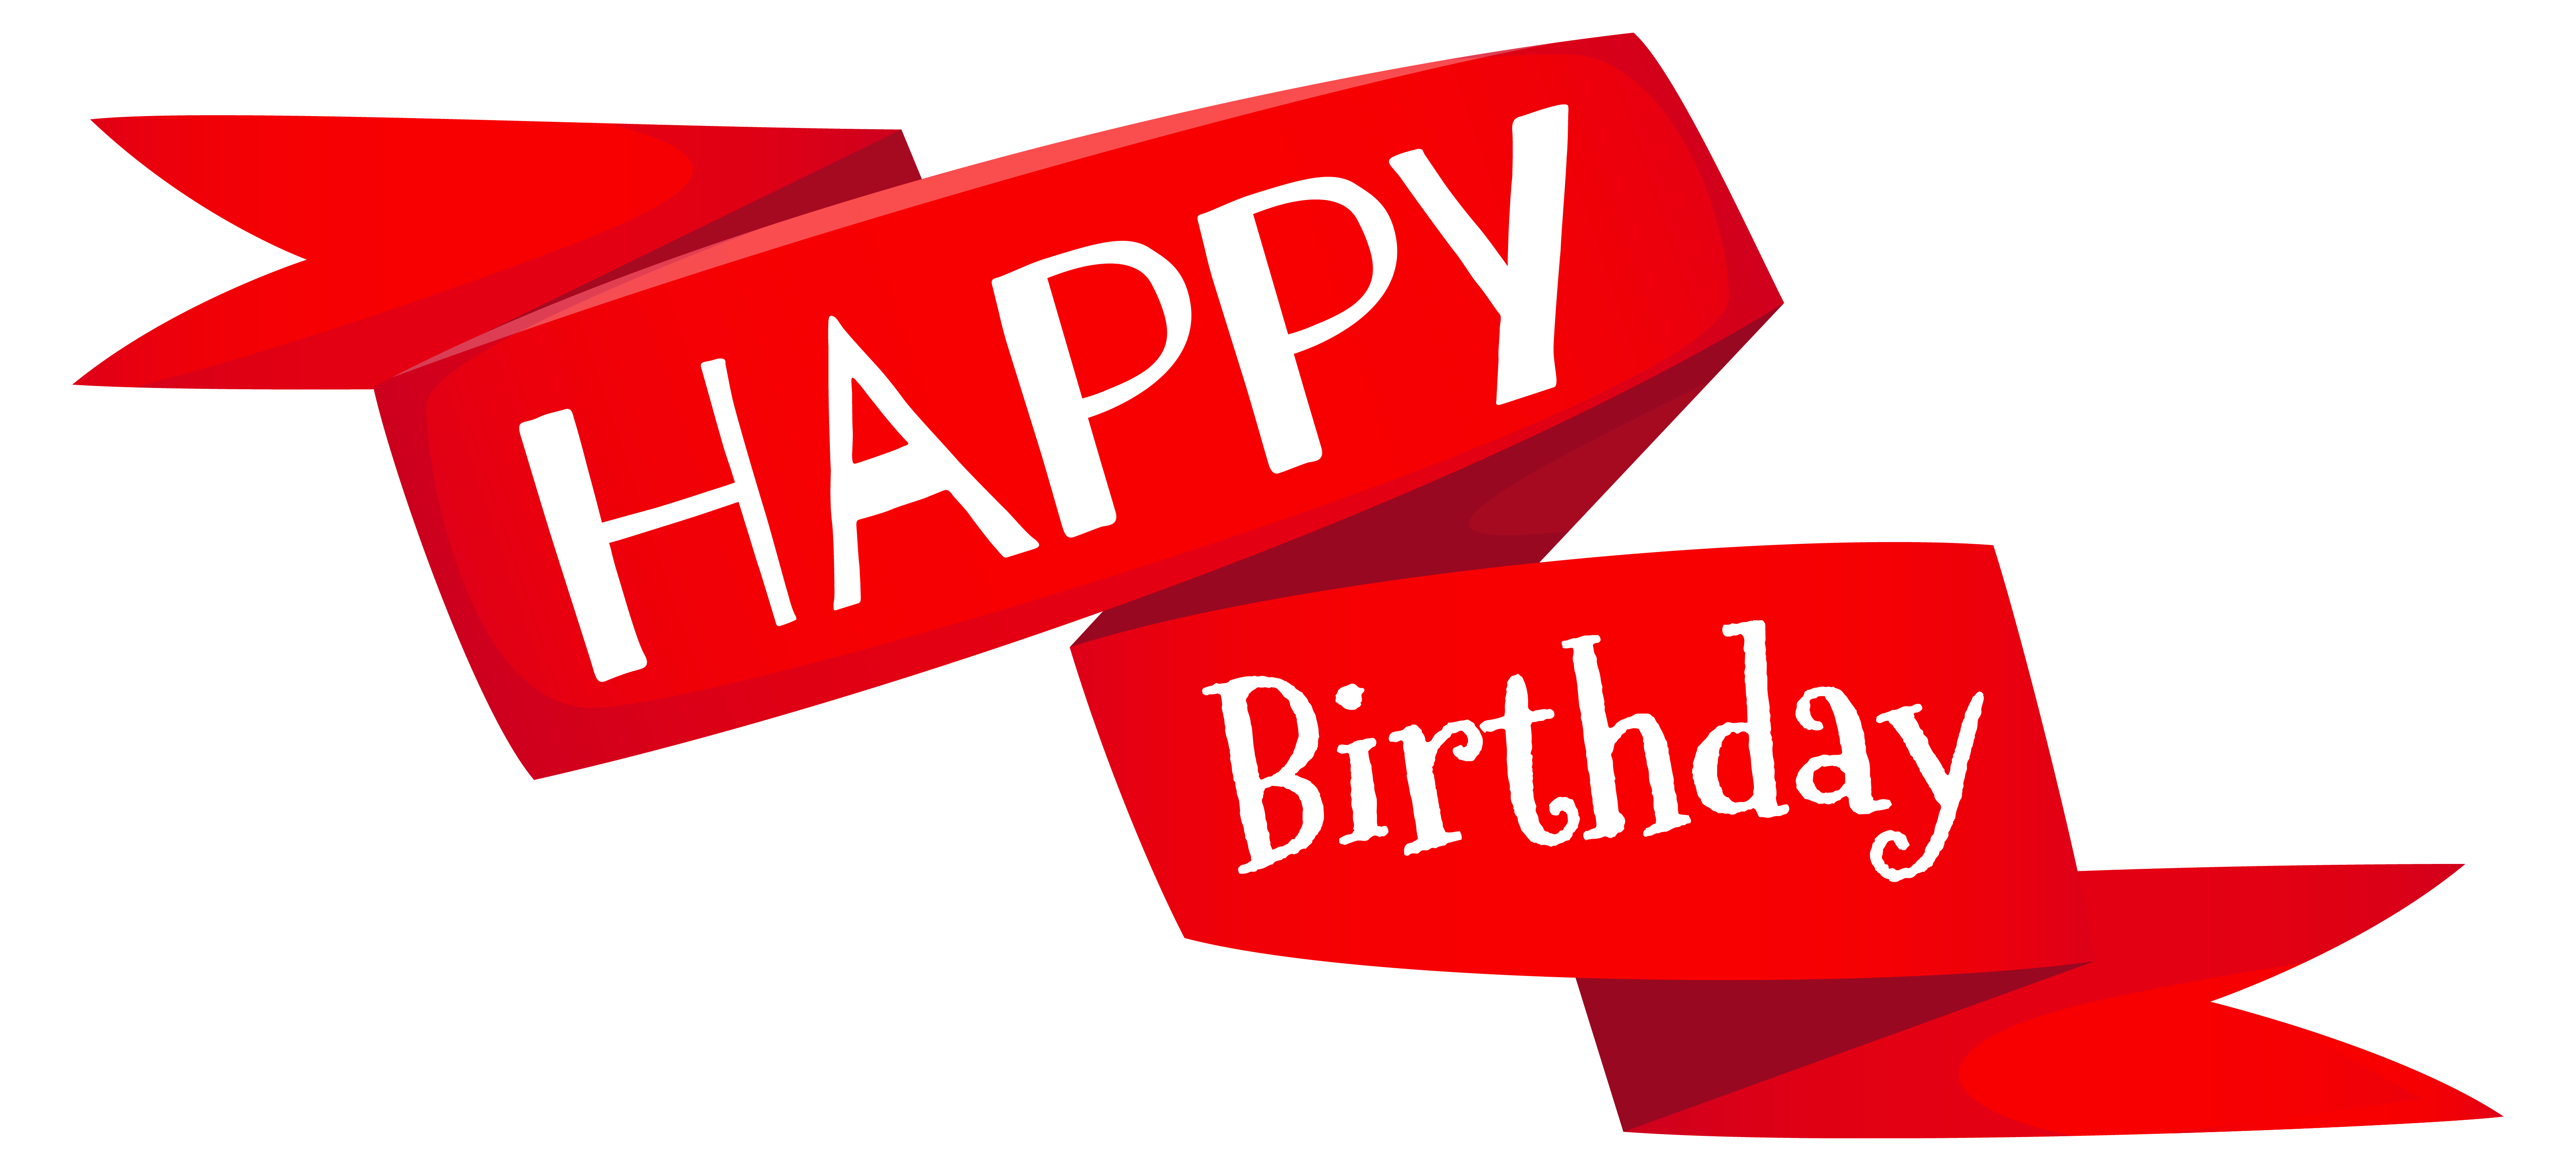 Red Happy Birthday Banner PNG Image.